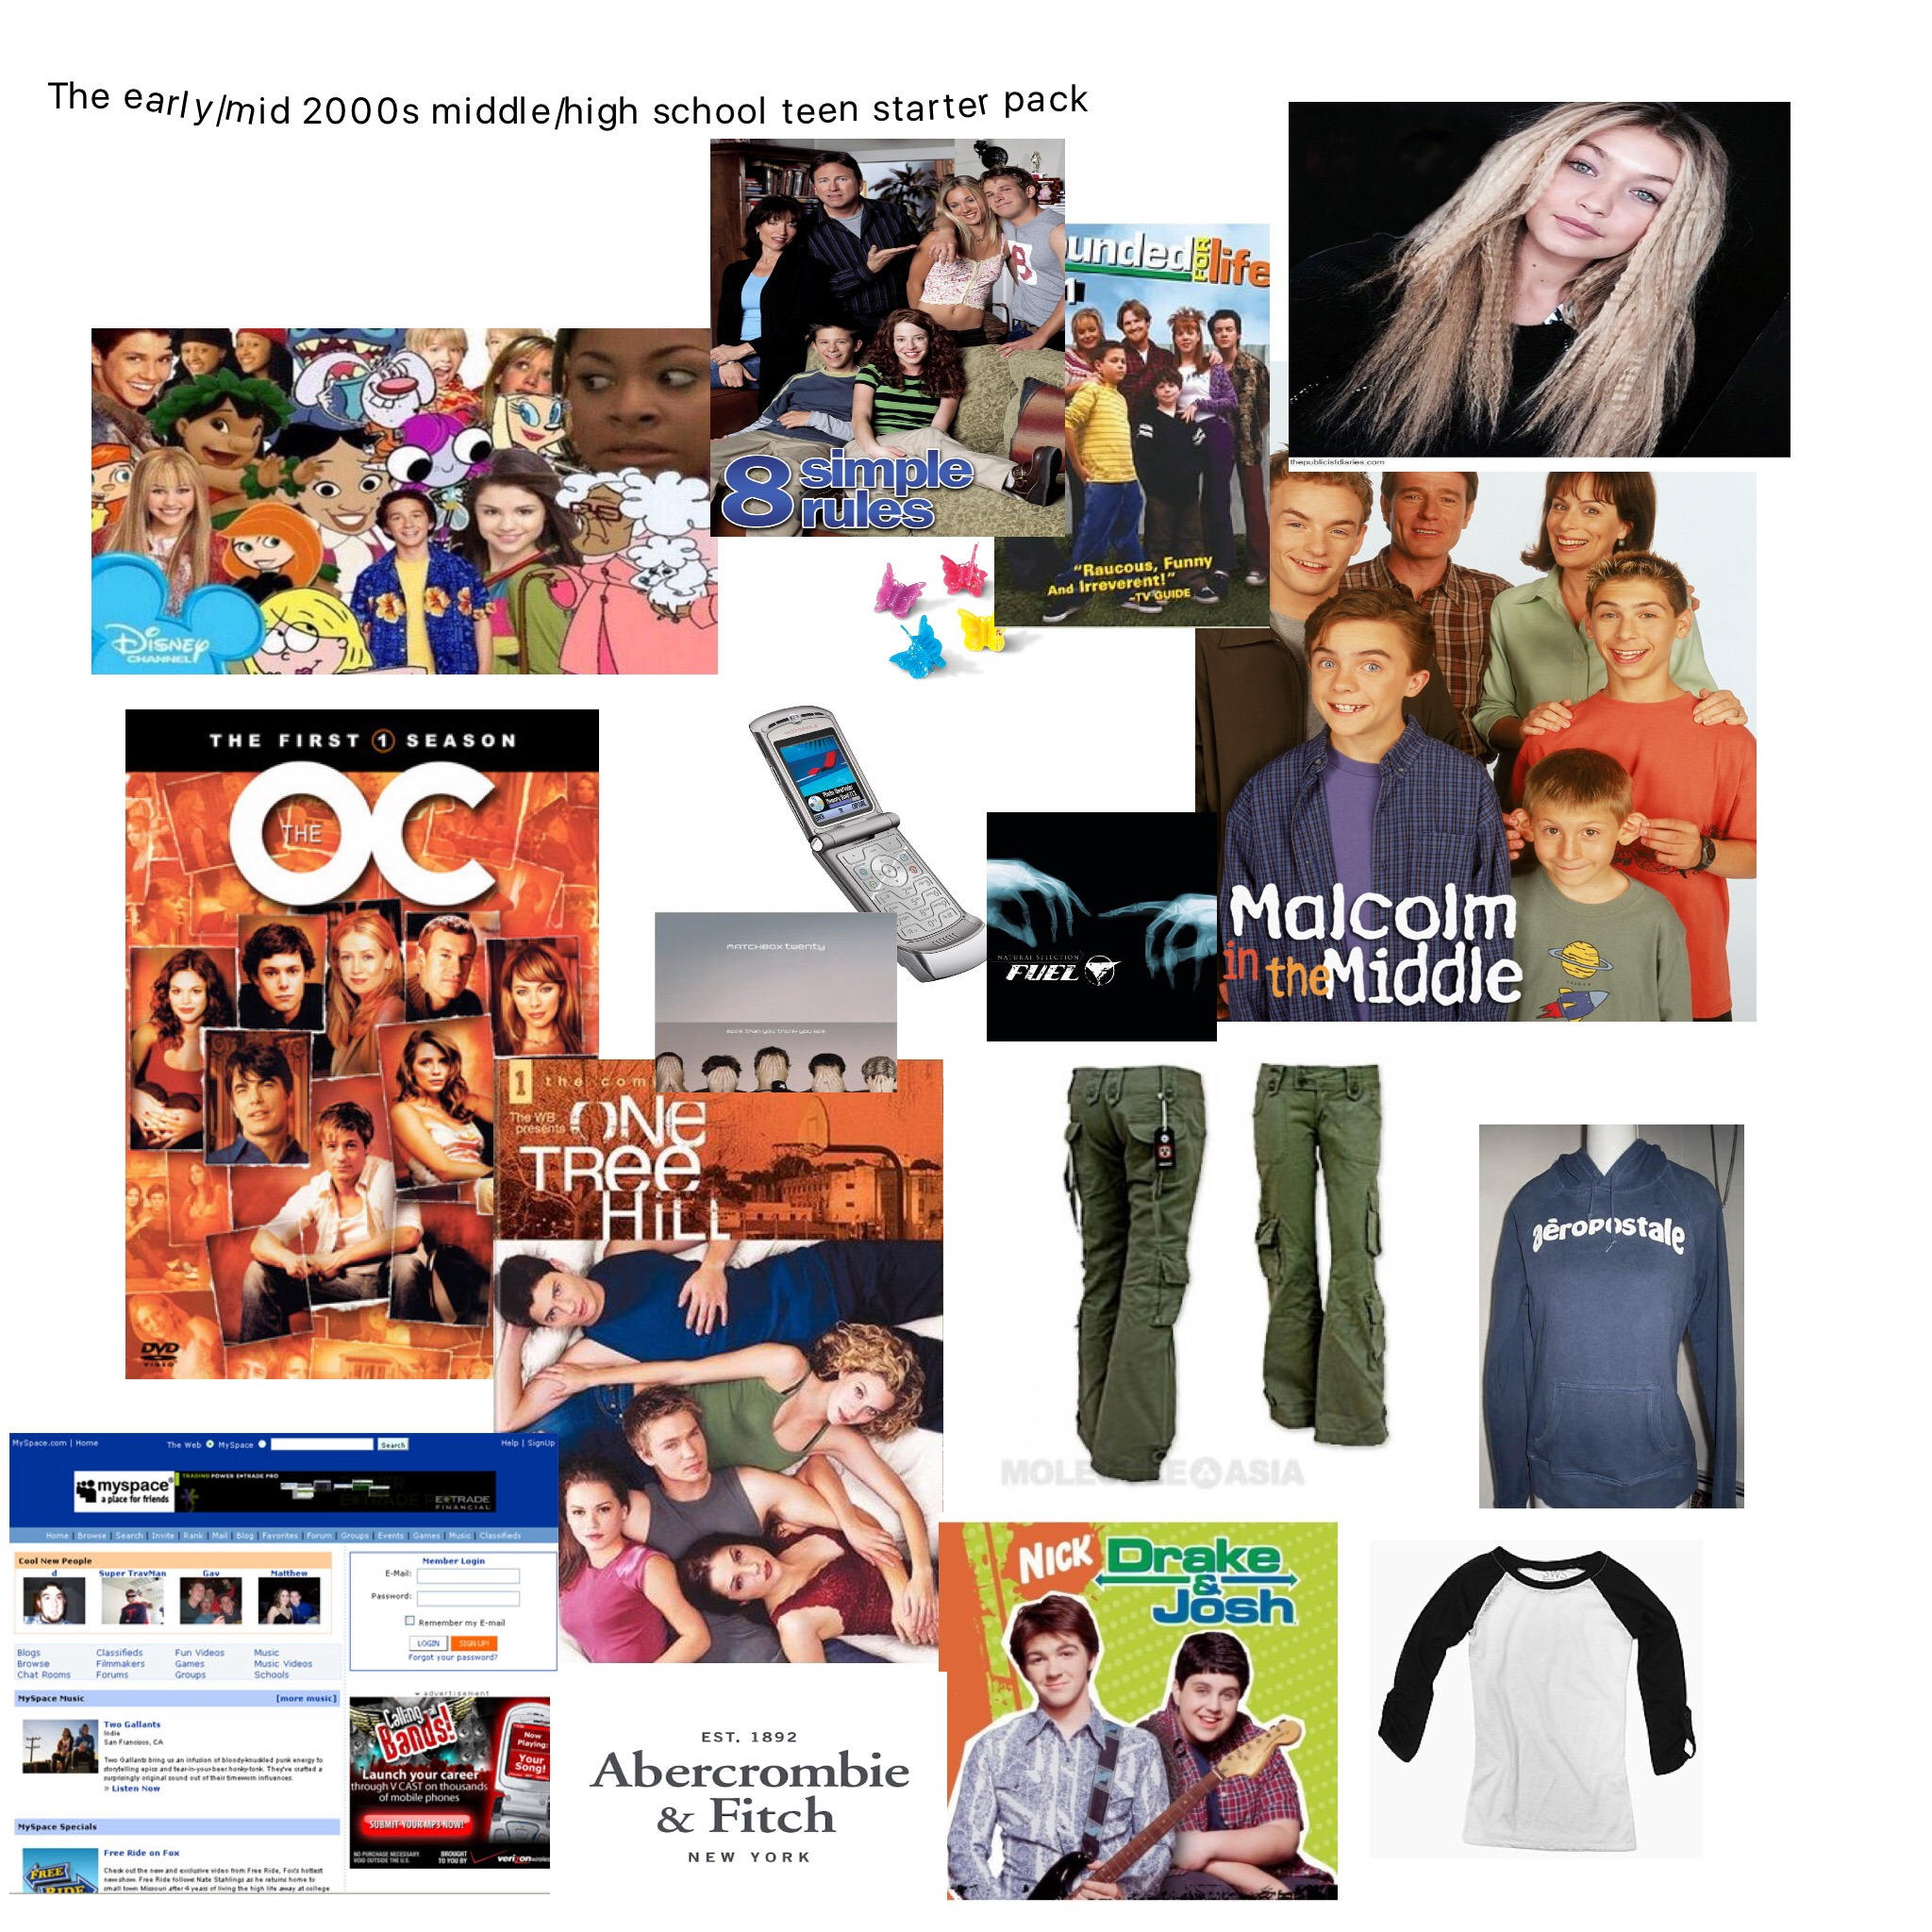 ac8 the early mid 2000's teen middle high school girl starter packs